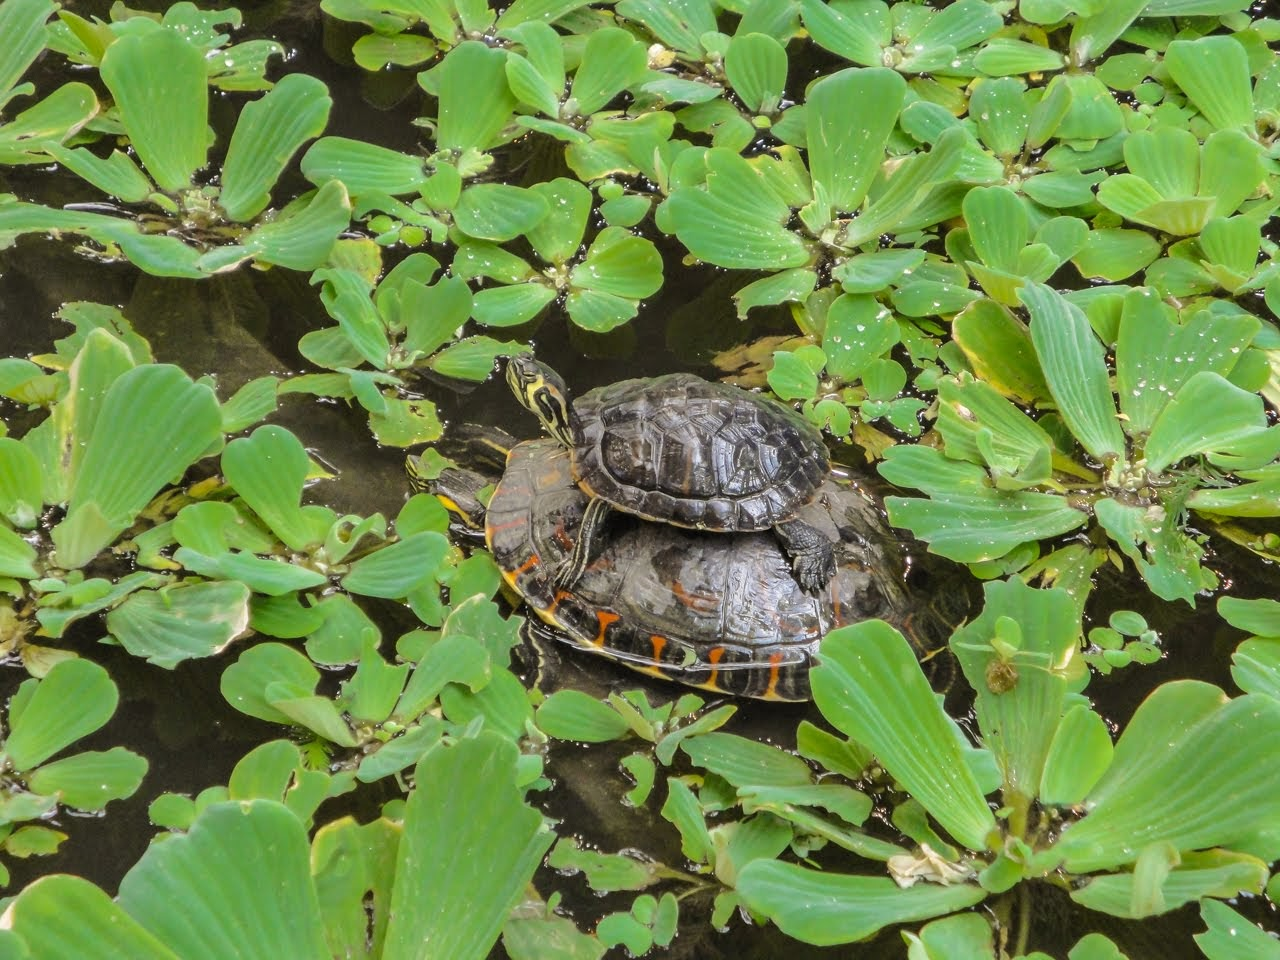 A turtle riding the back of another turtle within the tropical garden